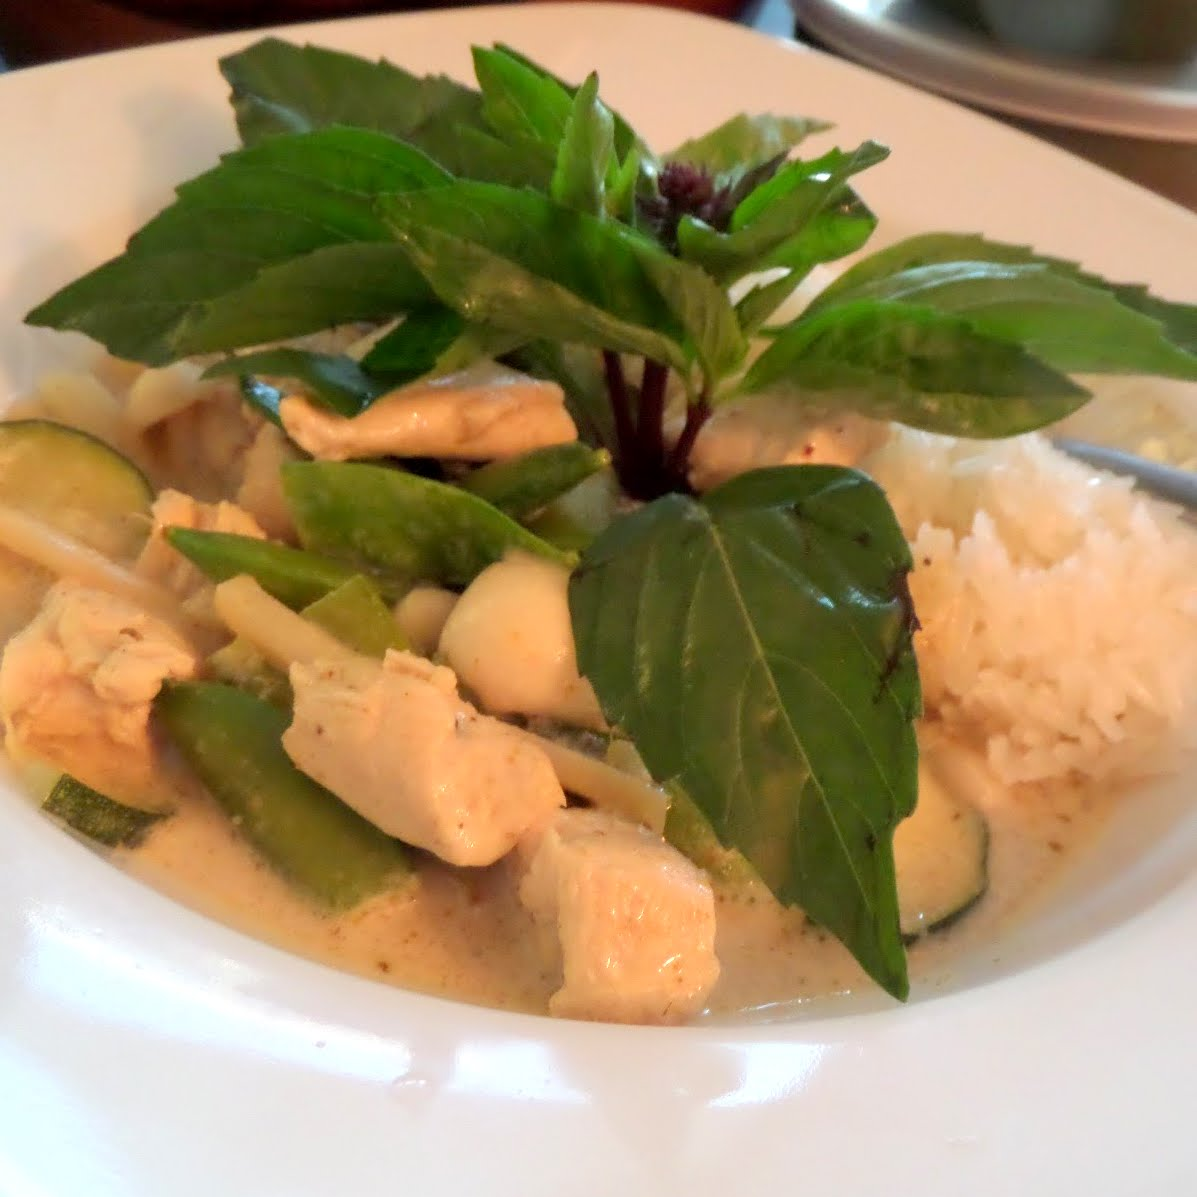 Chicken Green Curry:  a spicy Thai green curry with chicken, veggies, and rice.